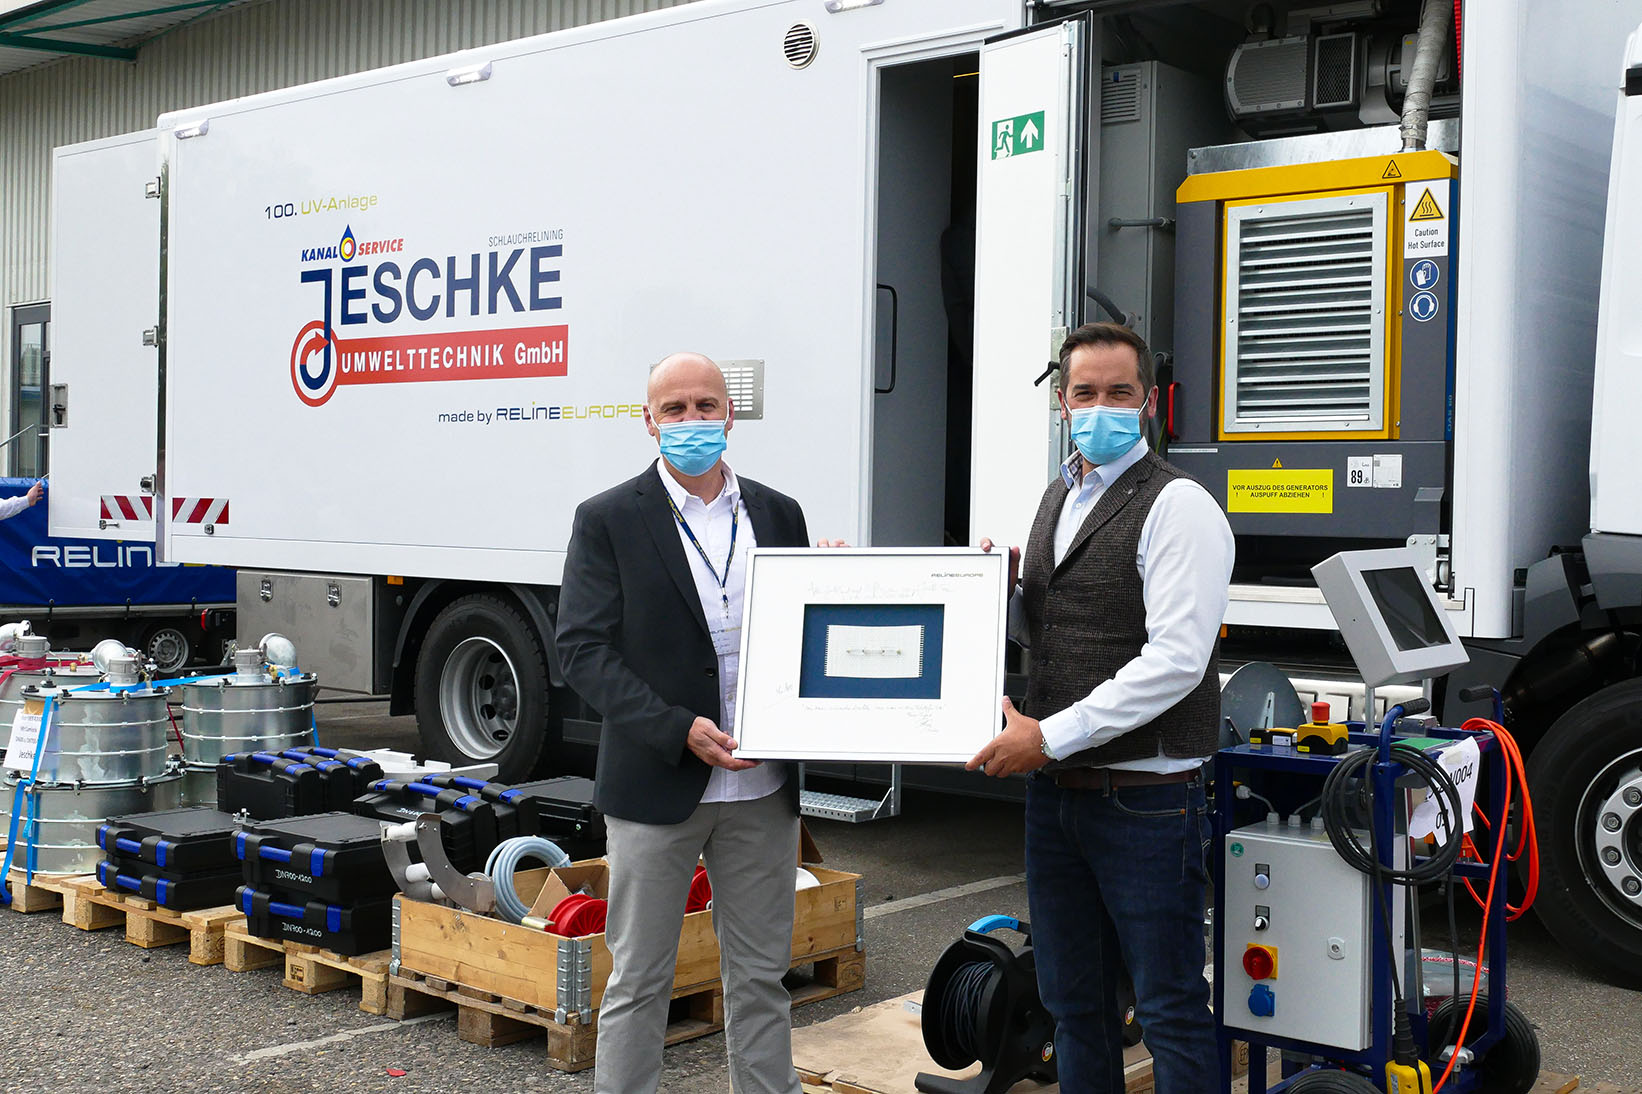 System handover in times of CoVid-19: Thomas Boos, managing director of Jeschke Umwelttechnik, side by side with RELINEEUROPE's sales director Philipp Martin - Photo: RELINEEUROPE